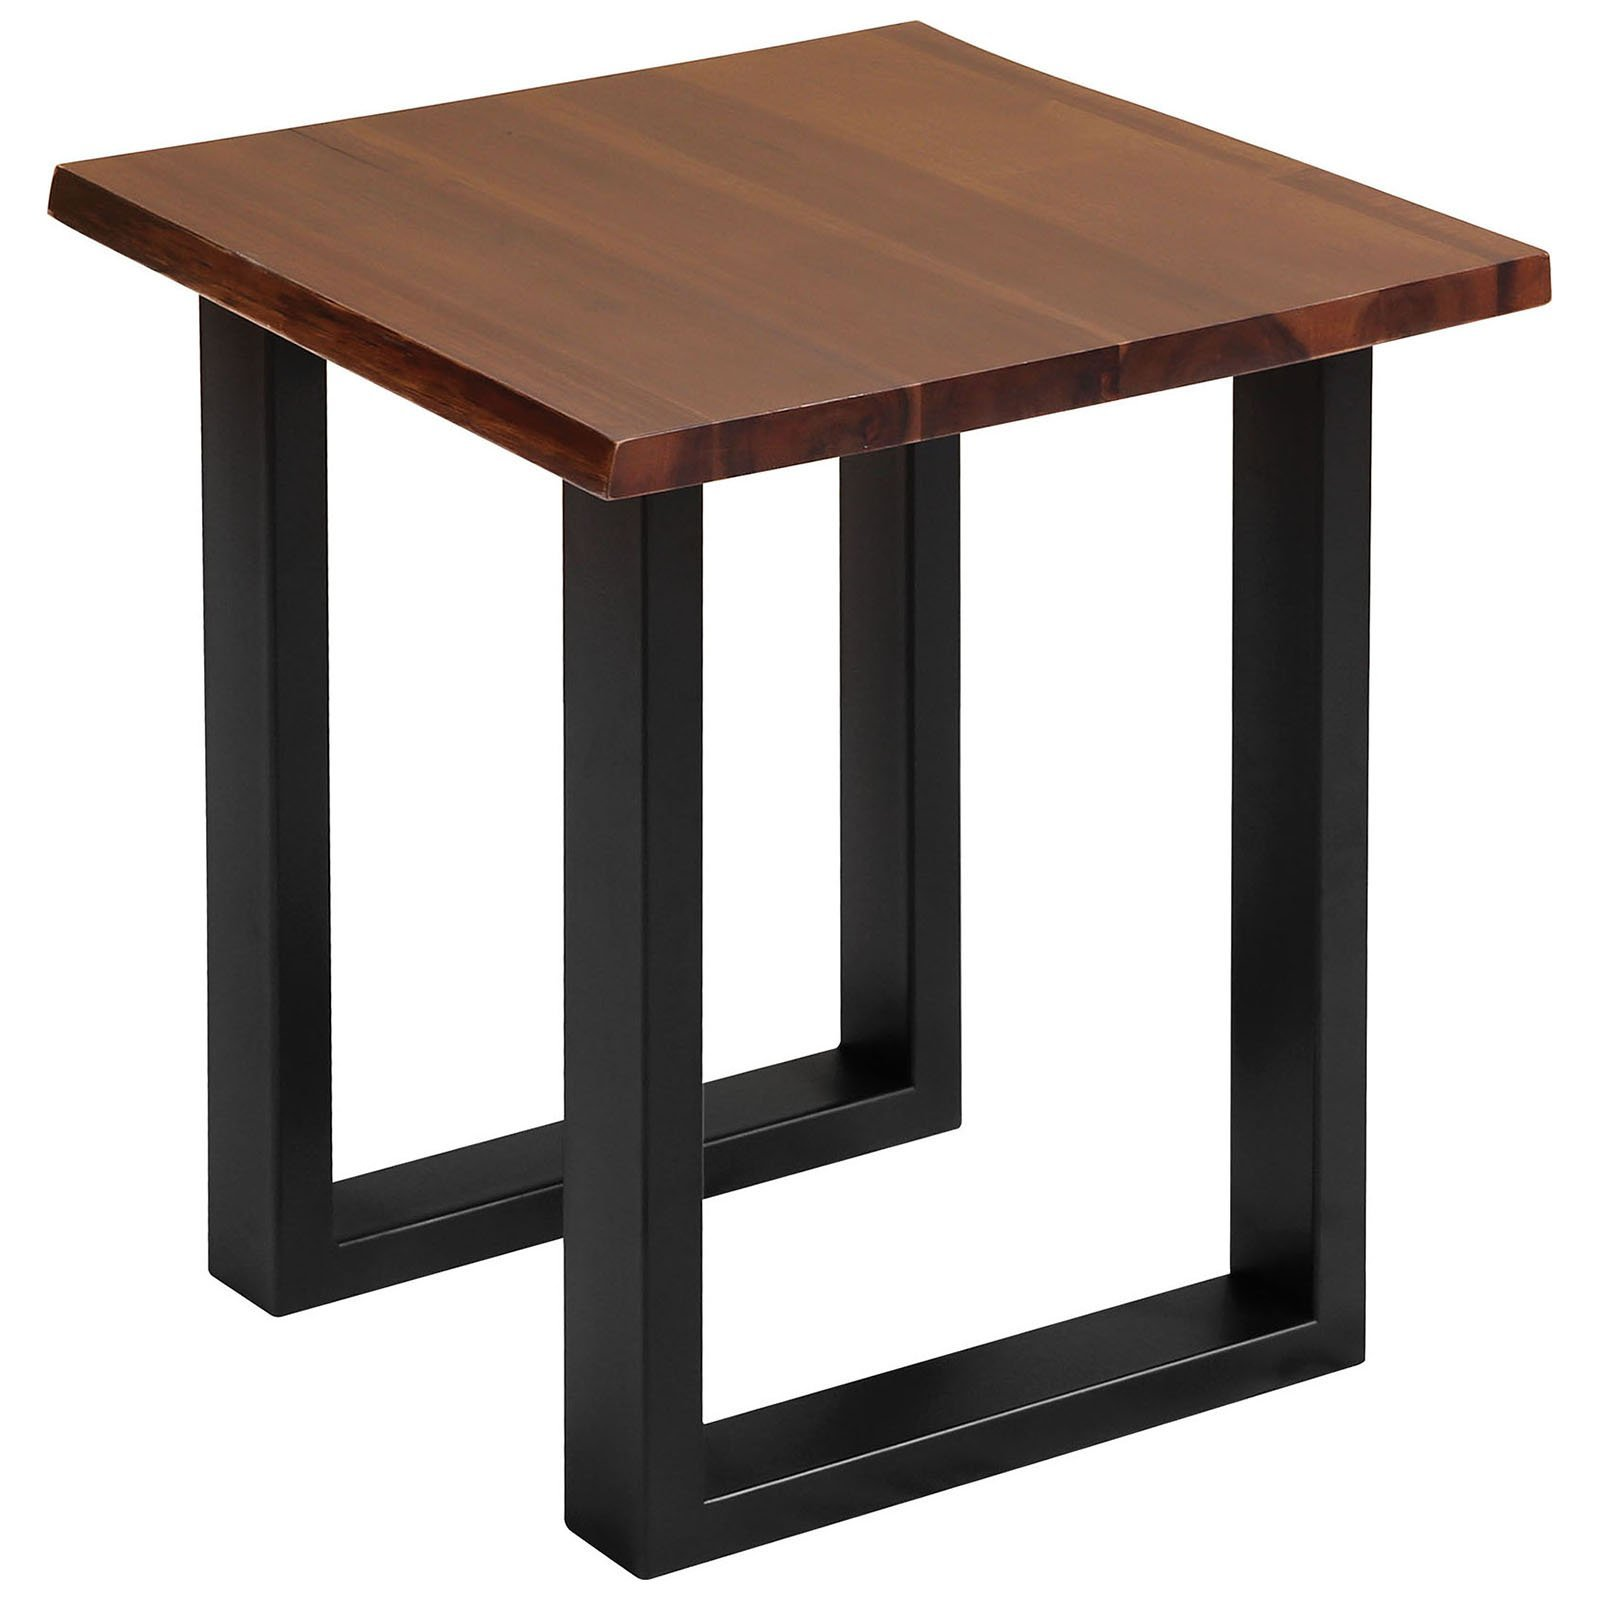 accent tables south loop dark brown and black modern farmhouse table with acacia wood metal side mission style coffee plans funky garden furniture battery operated touch lamp